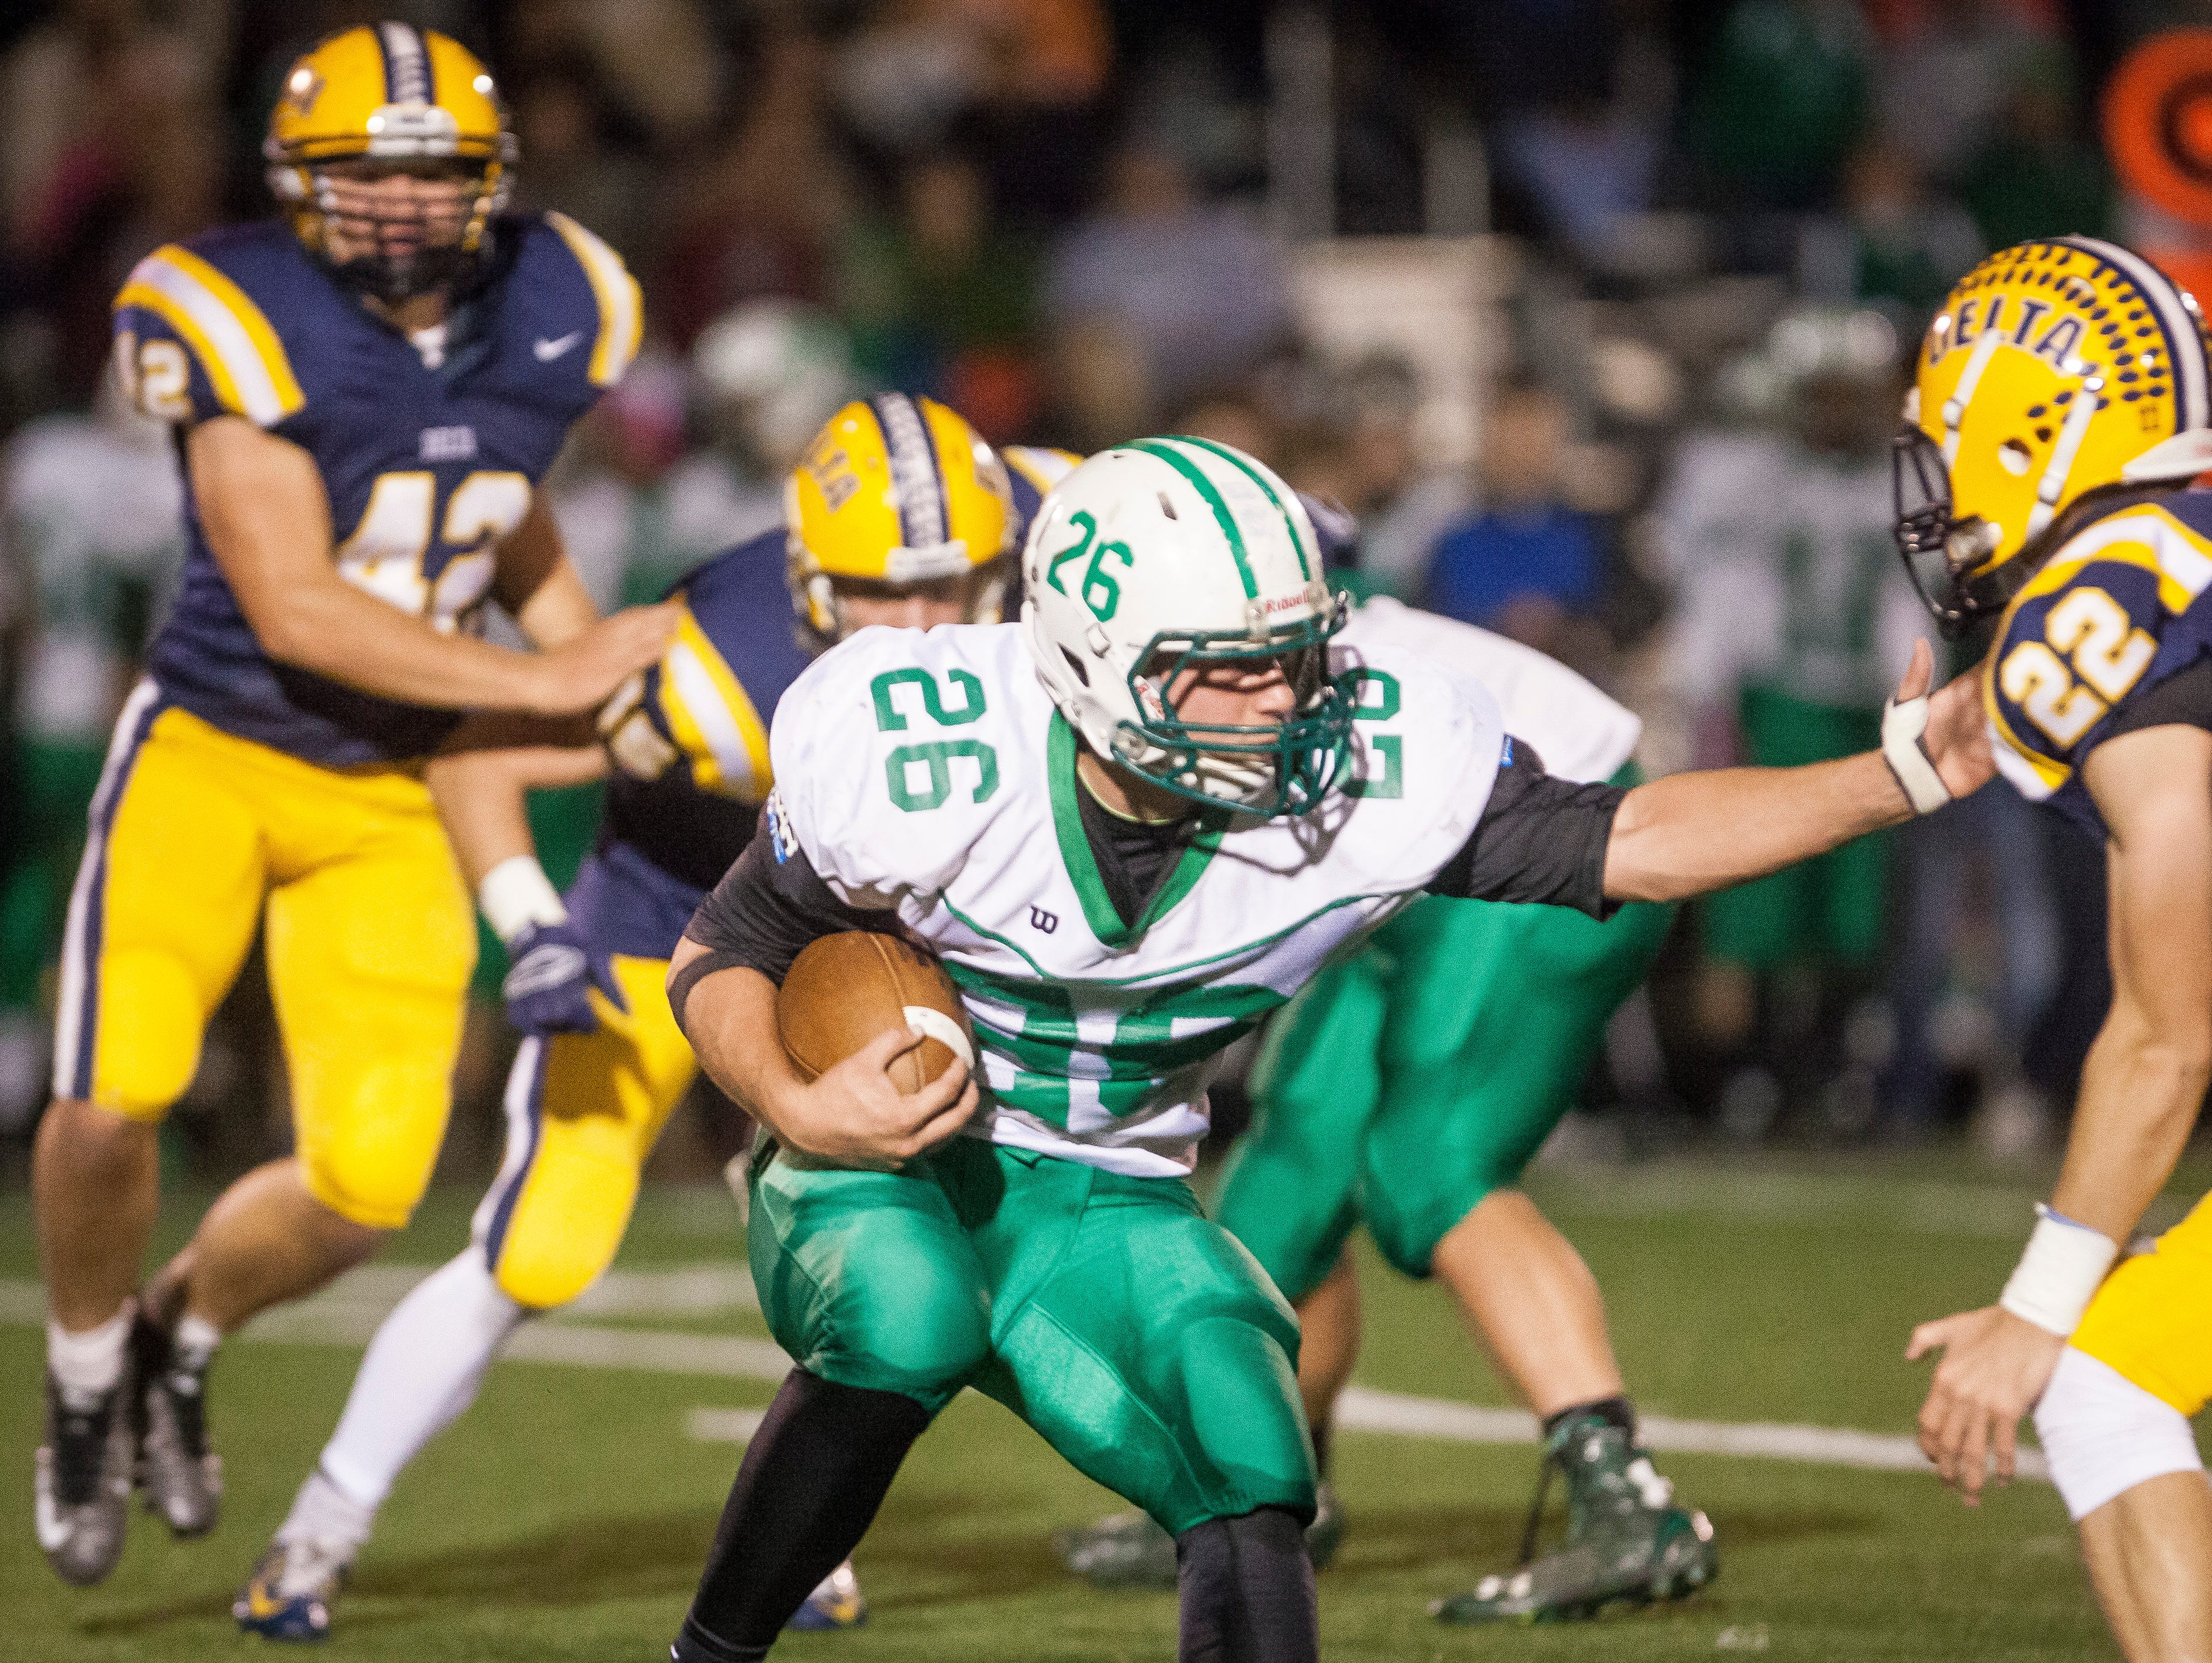 New Castle's Cody Werking tries to evade Delta defenders as he makes a run Friday night at Delta during the sectional game. Delta won 49-7.